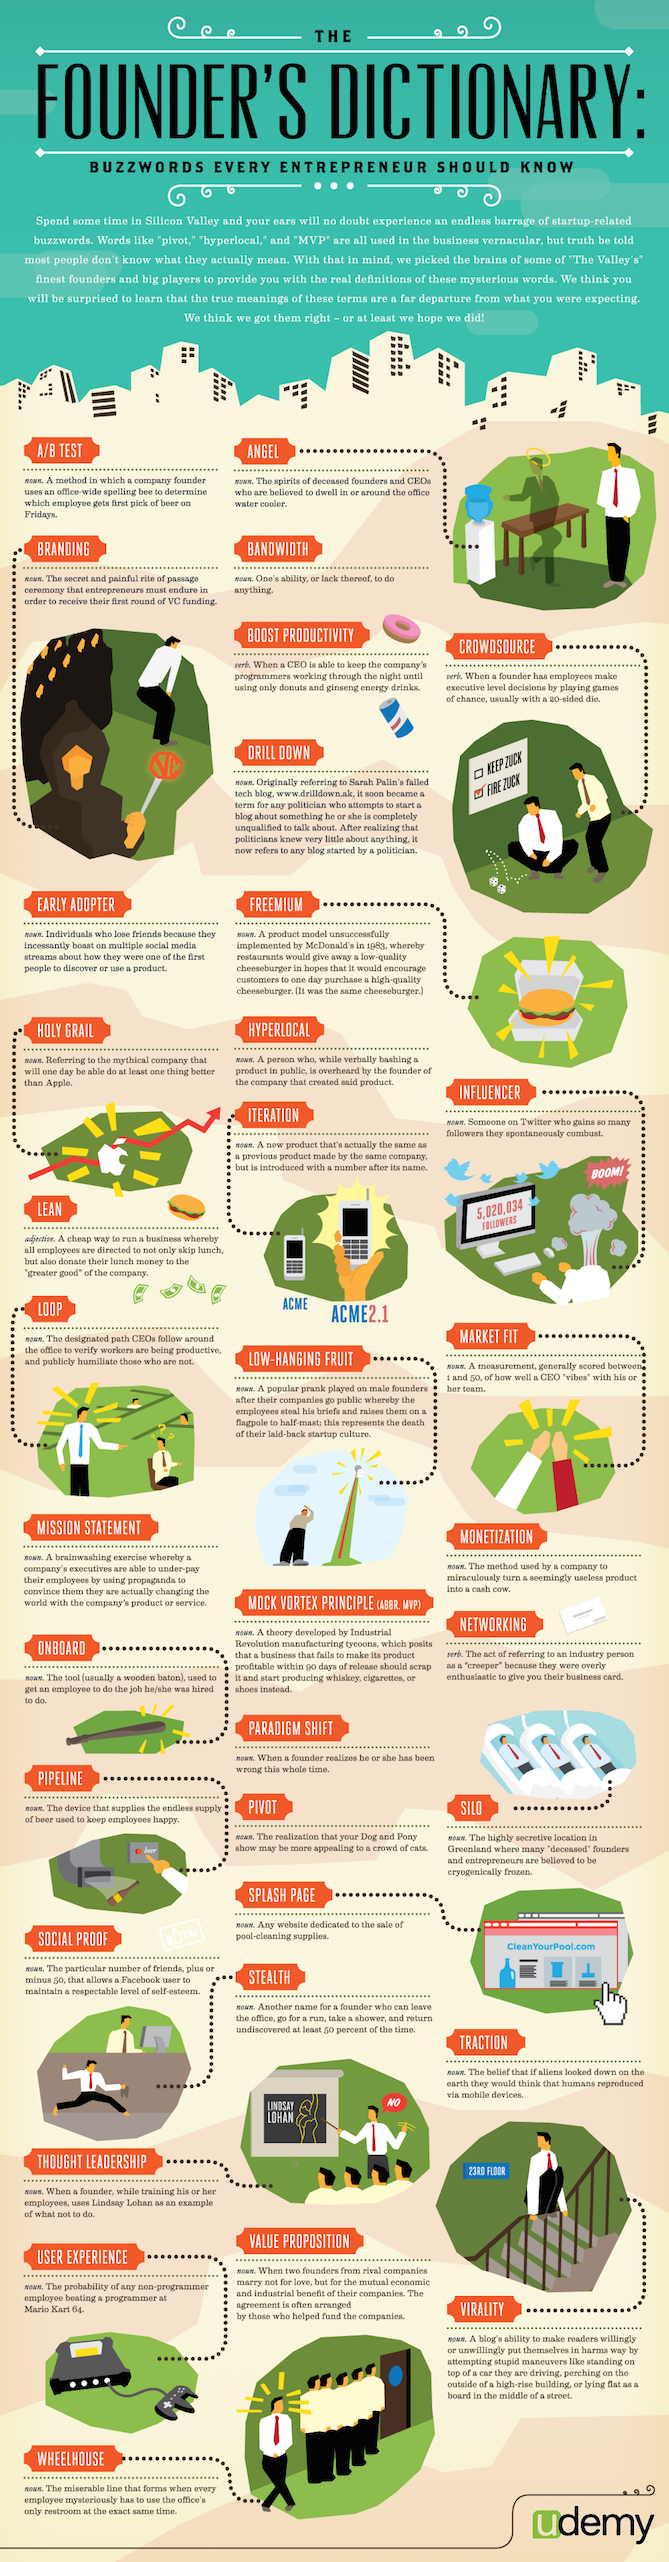 buzzwords-for-entrepreneurs-infographic